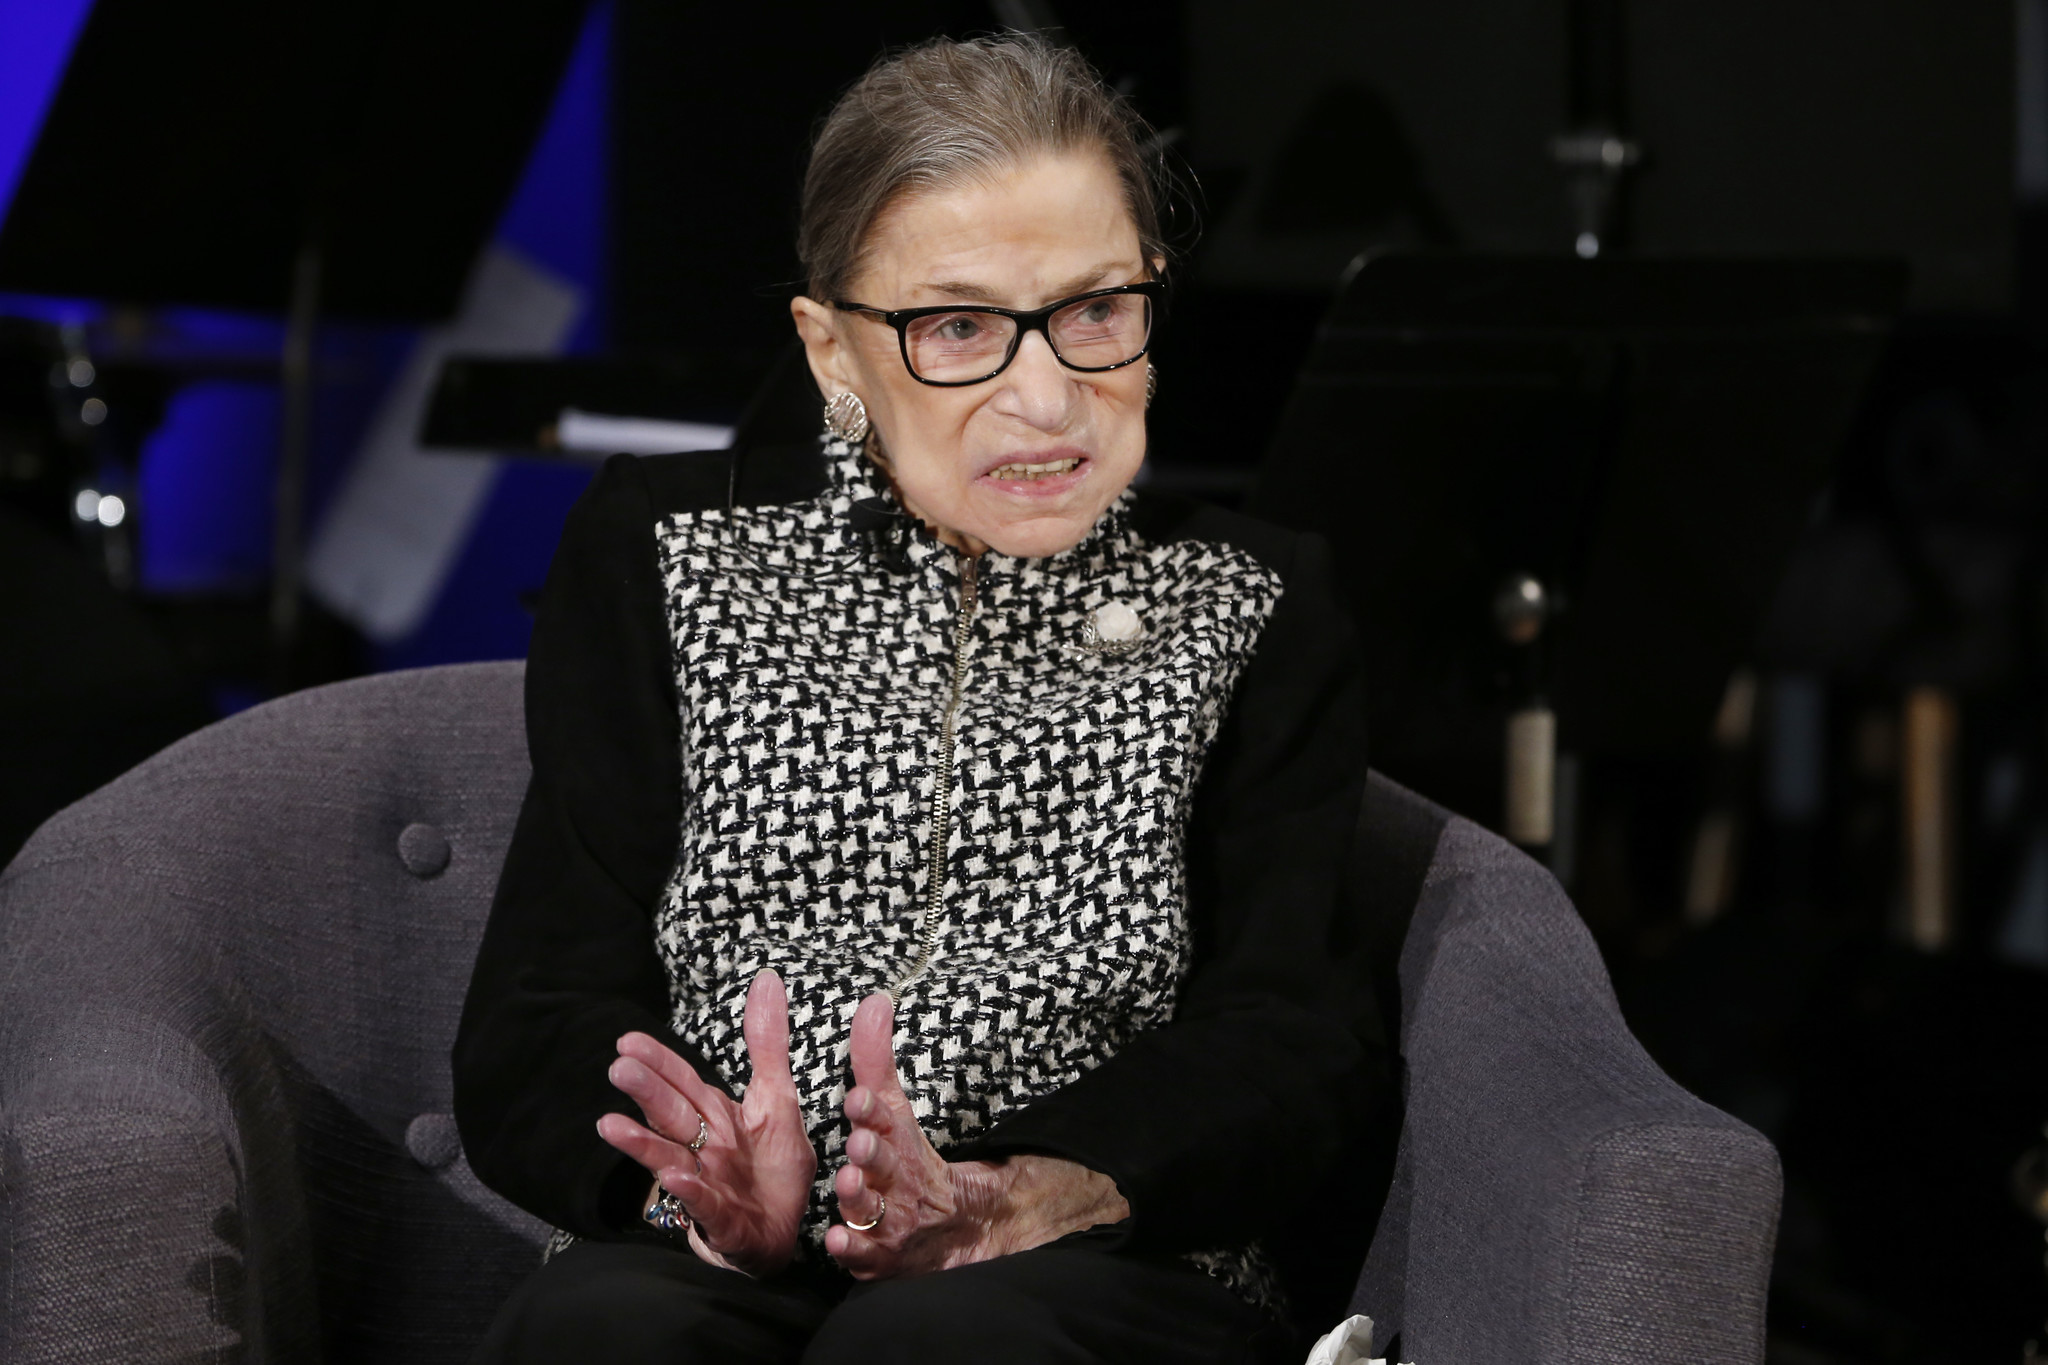 Ruth Bader Ginsburg says she's cancer free